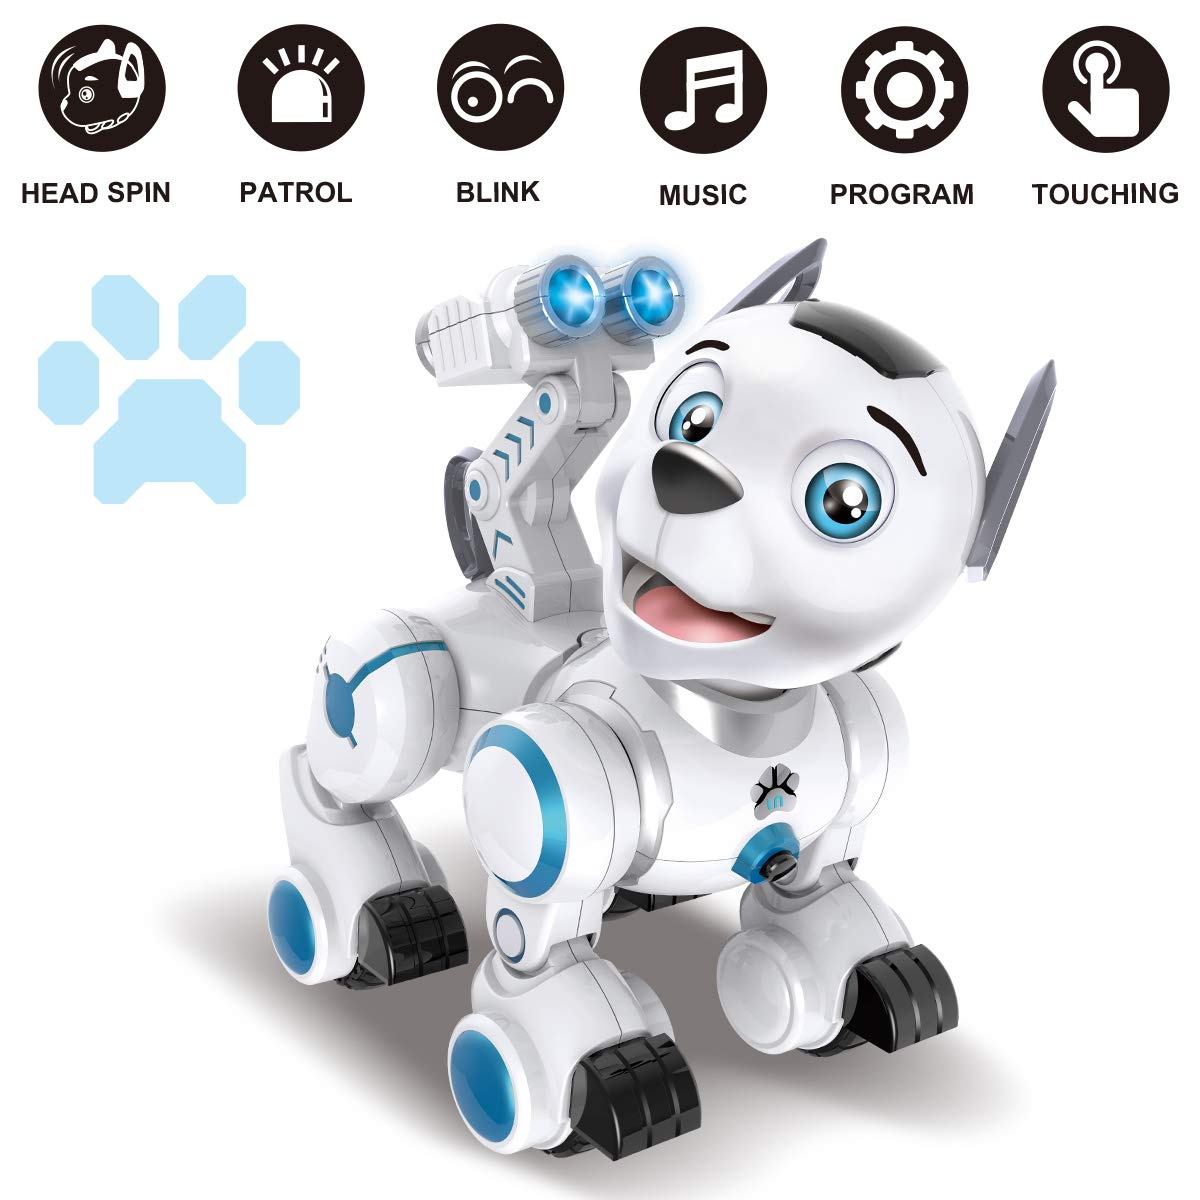 fisca Remote Control Robotic Dog RC Interactive Intelligent Walking Dancing Programmable Robot Puppy Toys Electronic Pets with Light and Sound for Kids Boys Girls Age 6, 7, 8, 9, 10 and Up Year Old - wiihuu